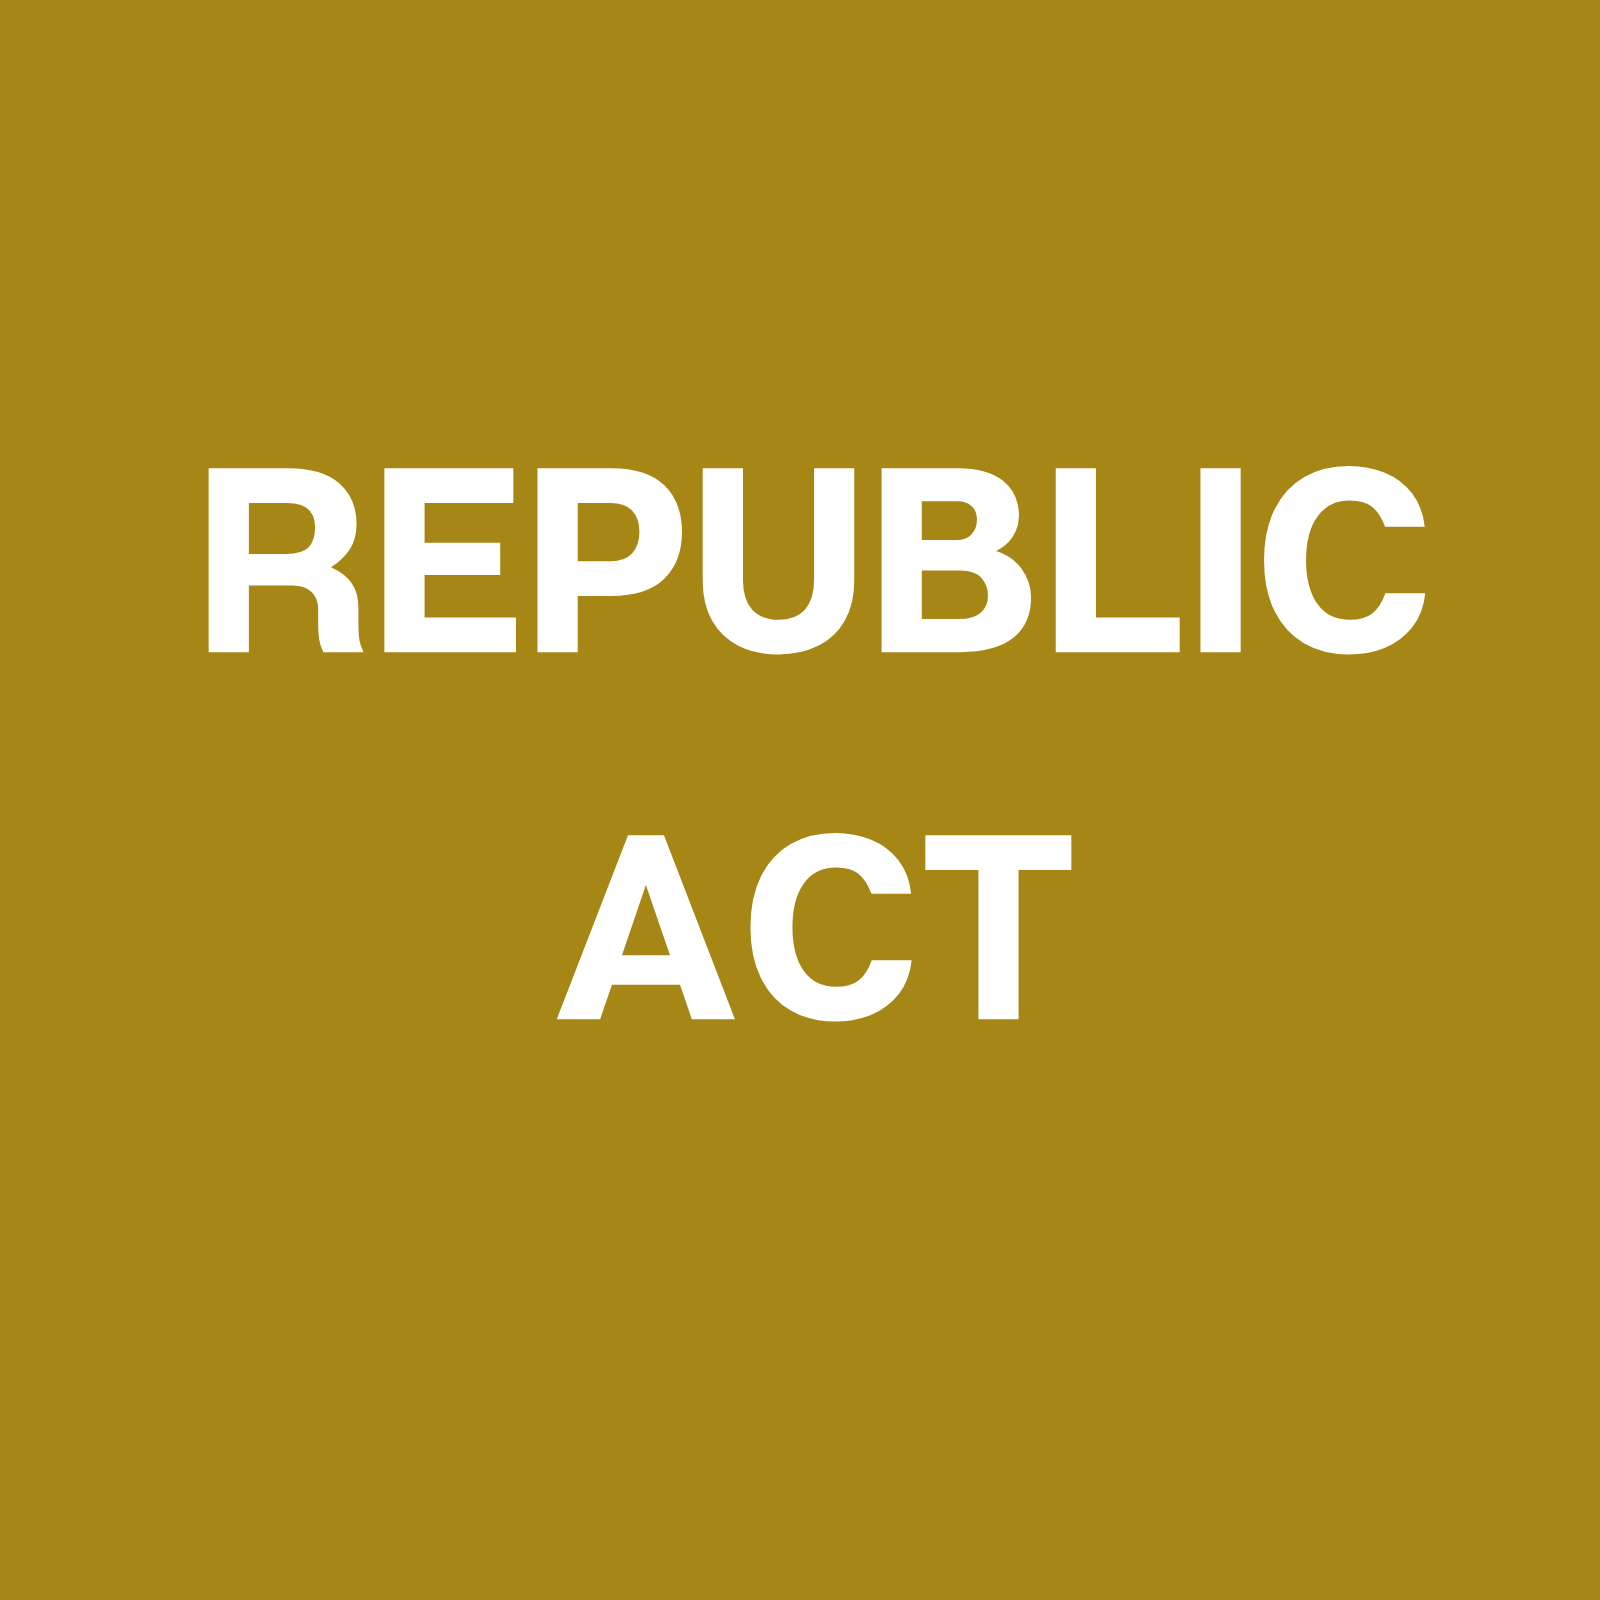 Republic Act